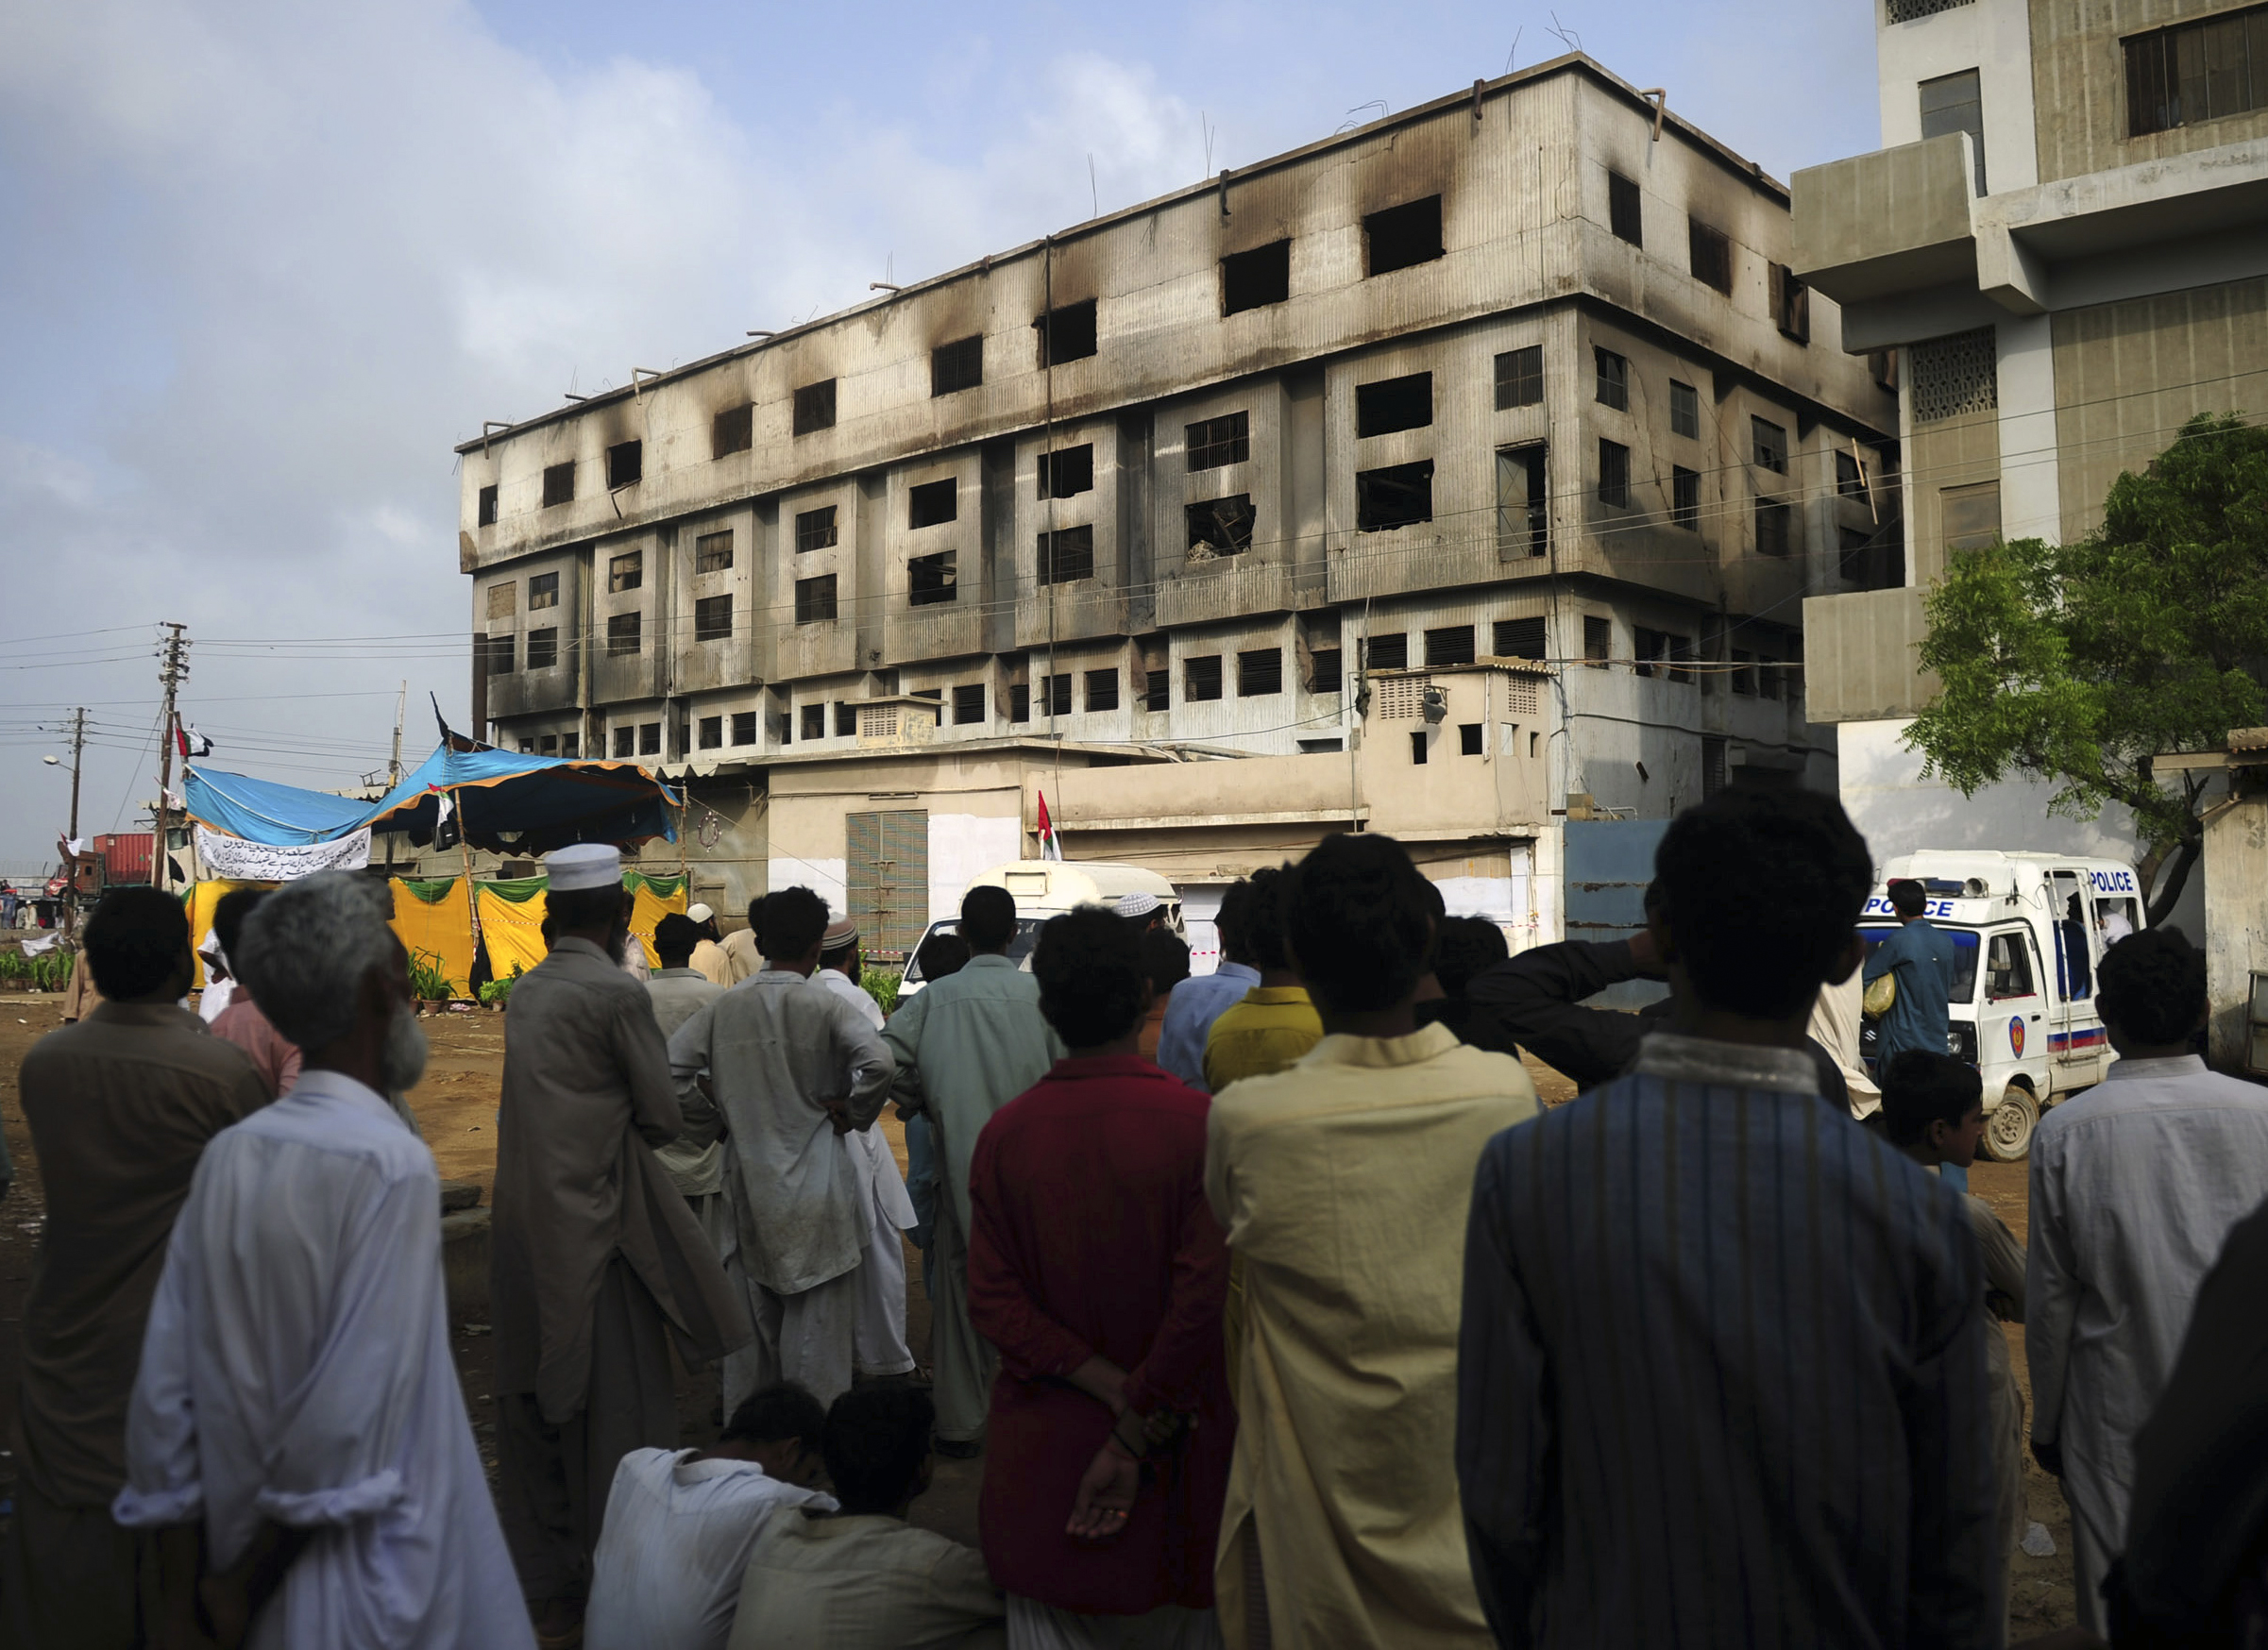 Bystanders look on outside the burnt-out garment factory in Karachi on September 14, 2012.  (ASIF HASSAN/AFP/GettyImages)